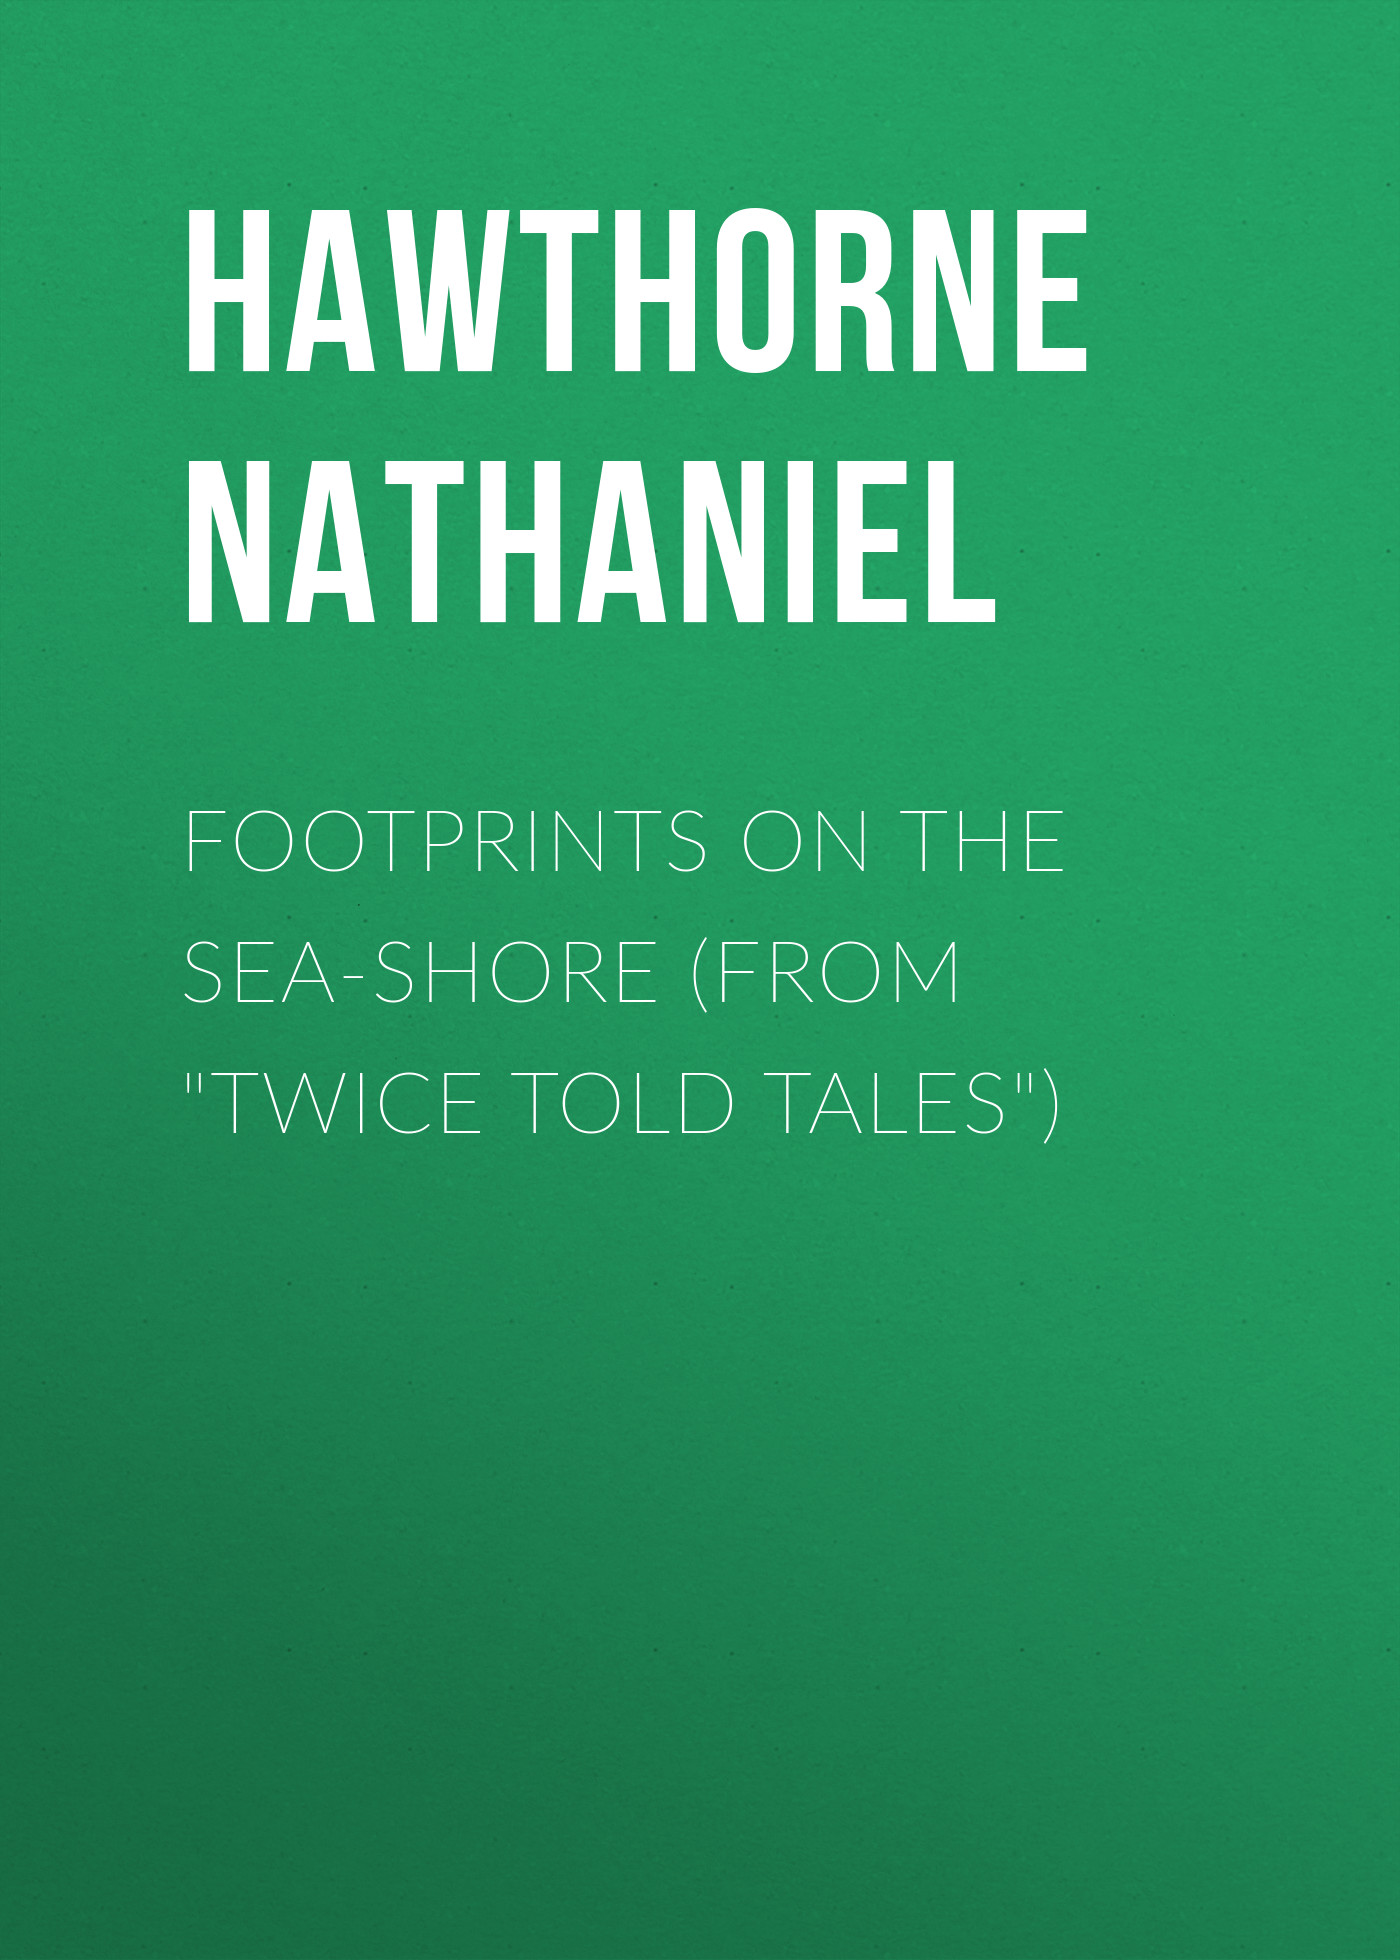 Hawthorne Nathaniel Footprints on the Sea-Shore (From Twice Told Tales) hawthorne nathaniel the threefold destiny from twice told tales